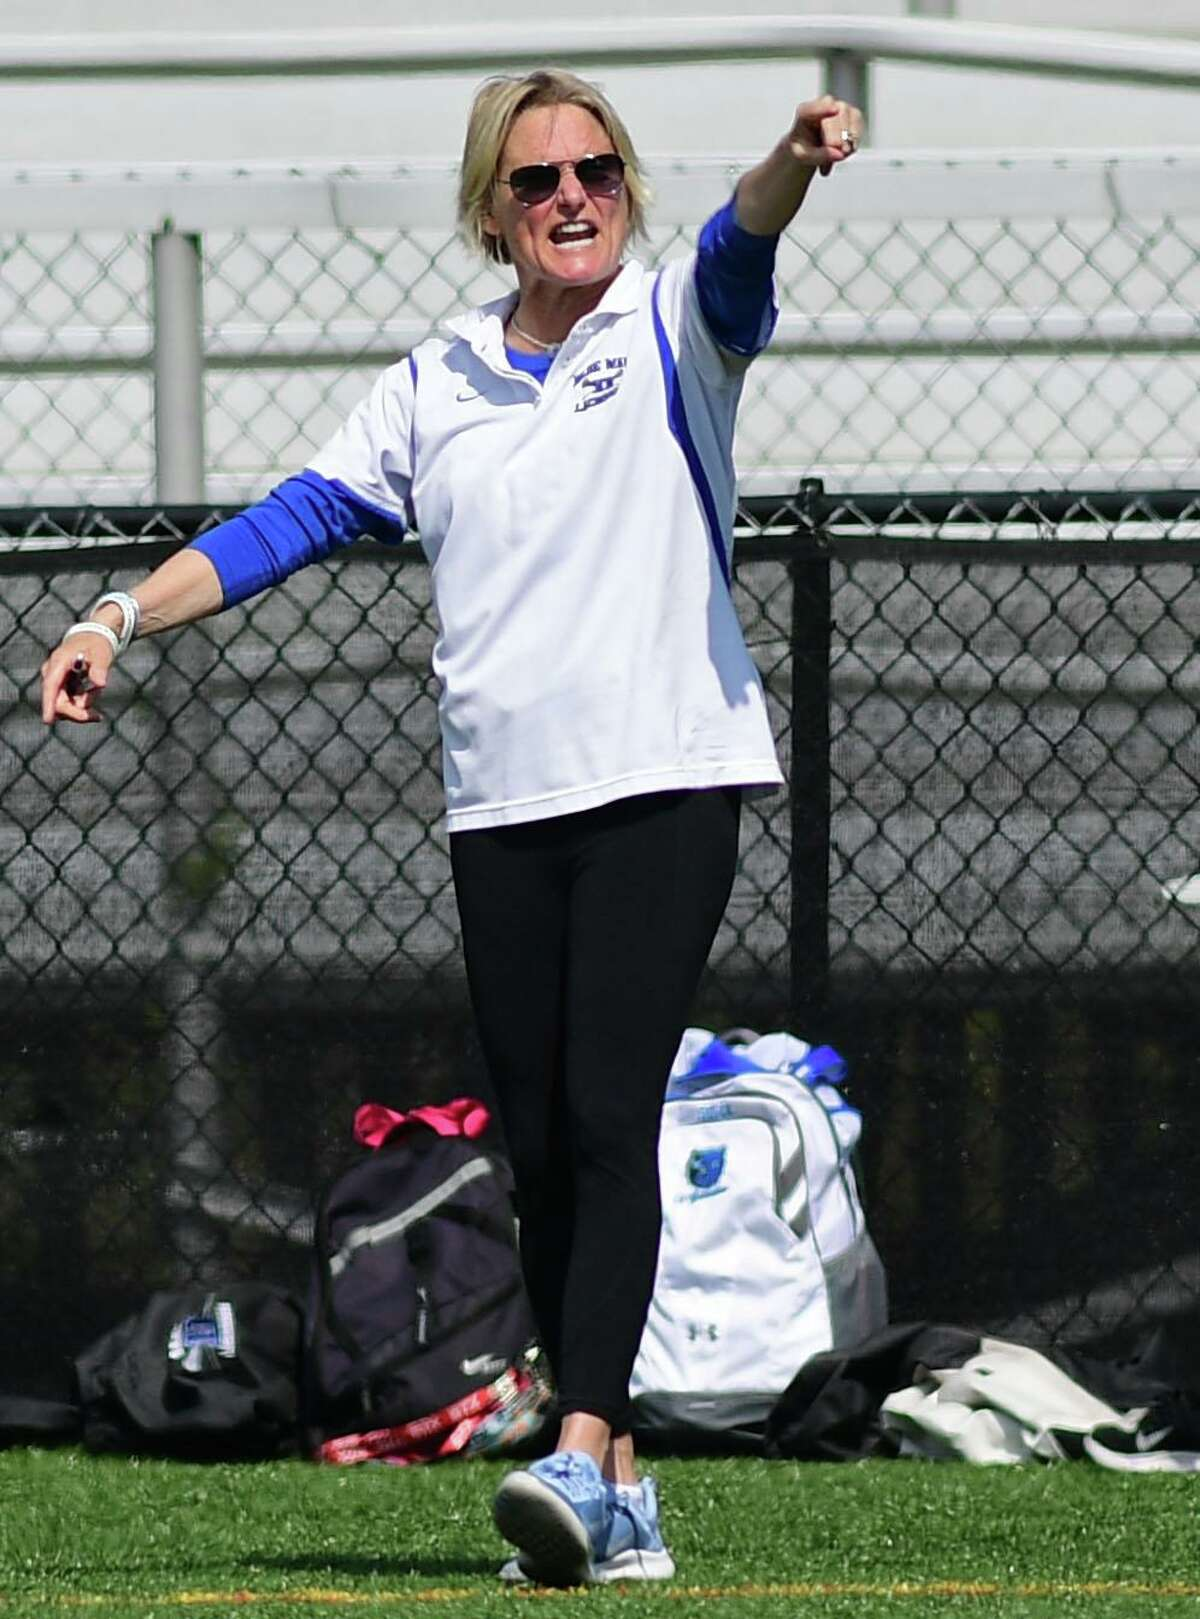 Blue Wave head coach Lisa Lindley talks to her players as The No. 1 Darien High School Blue Wave takes on the New Canaan Highh School Rams in their FCIAC girls lacrosse game Saturday. May 4, 2019, in New Canaan, Conn. New Canaan girls lacrosse team defeated the rival Darien Blue Wave 12-11 in the Class L semifinals last spring.